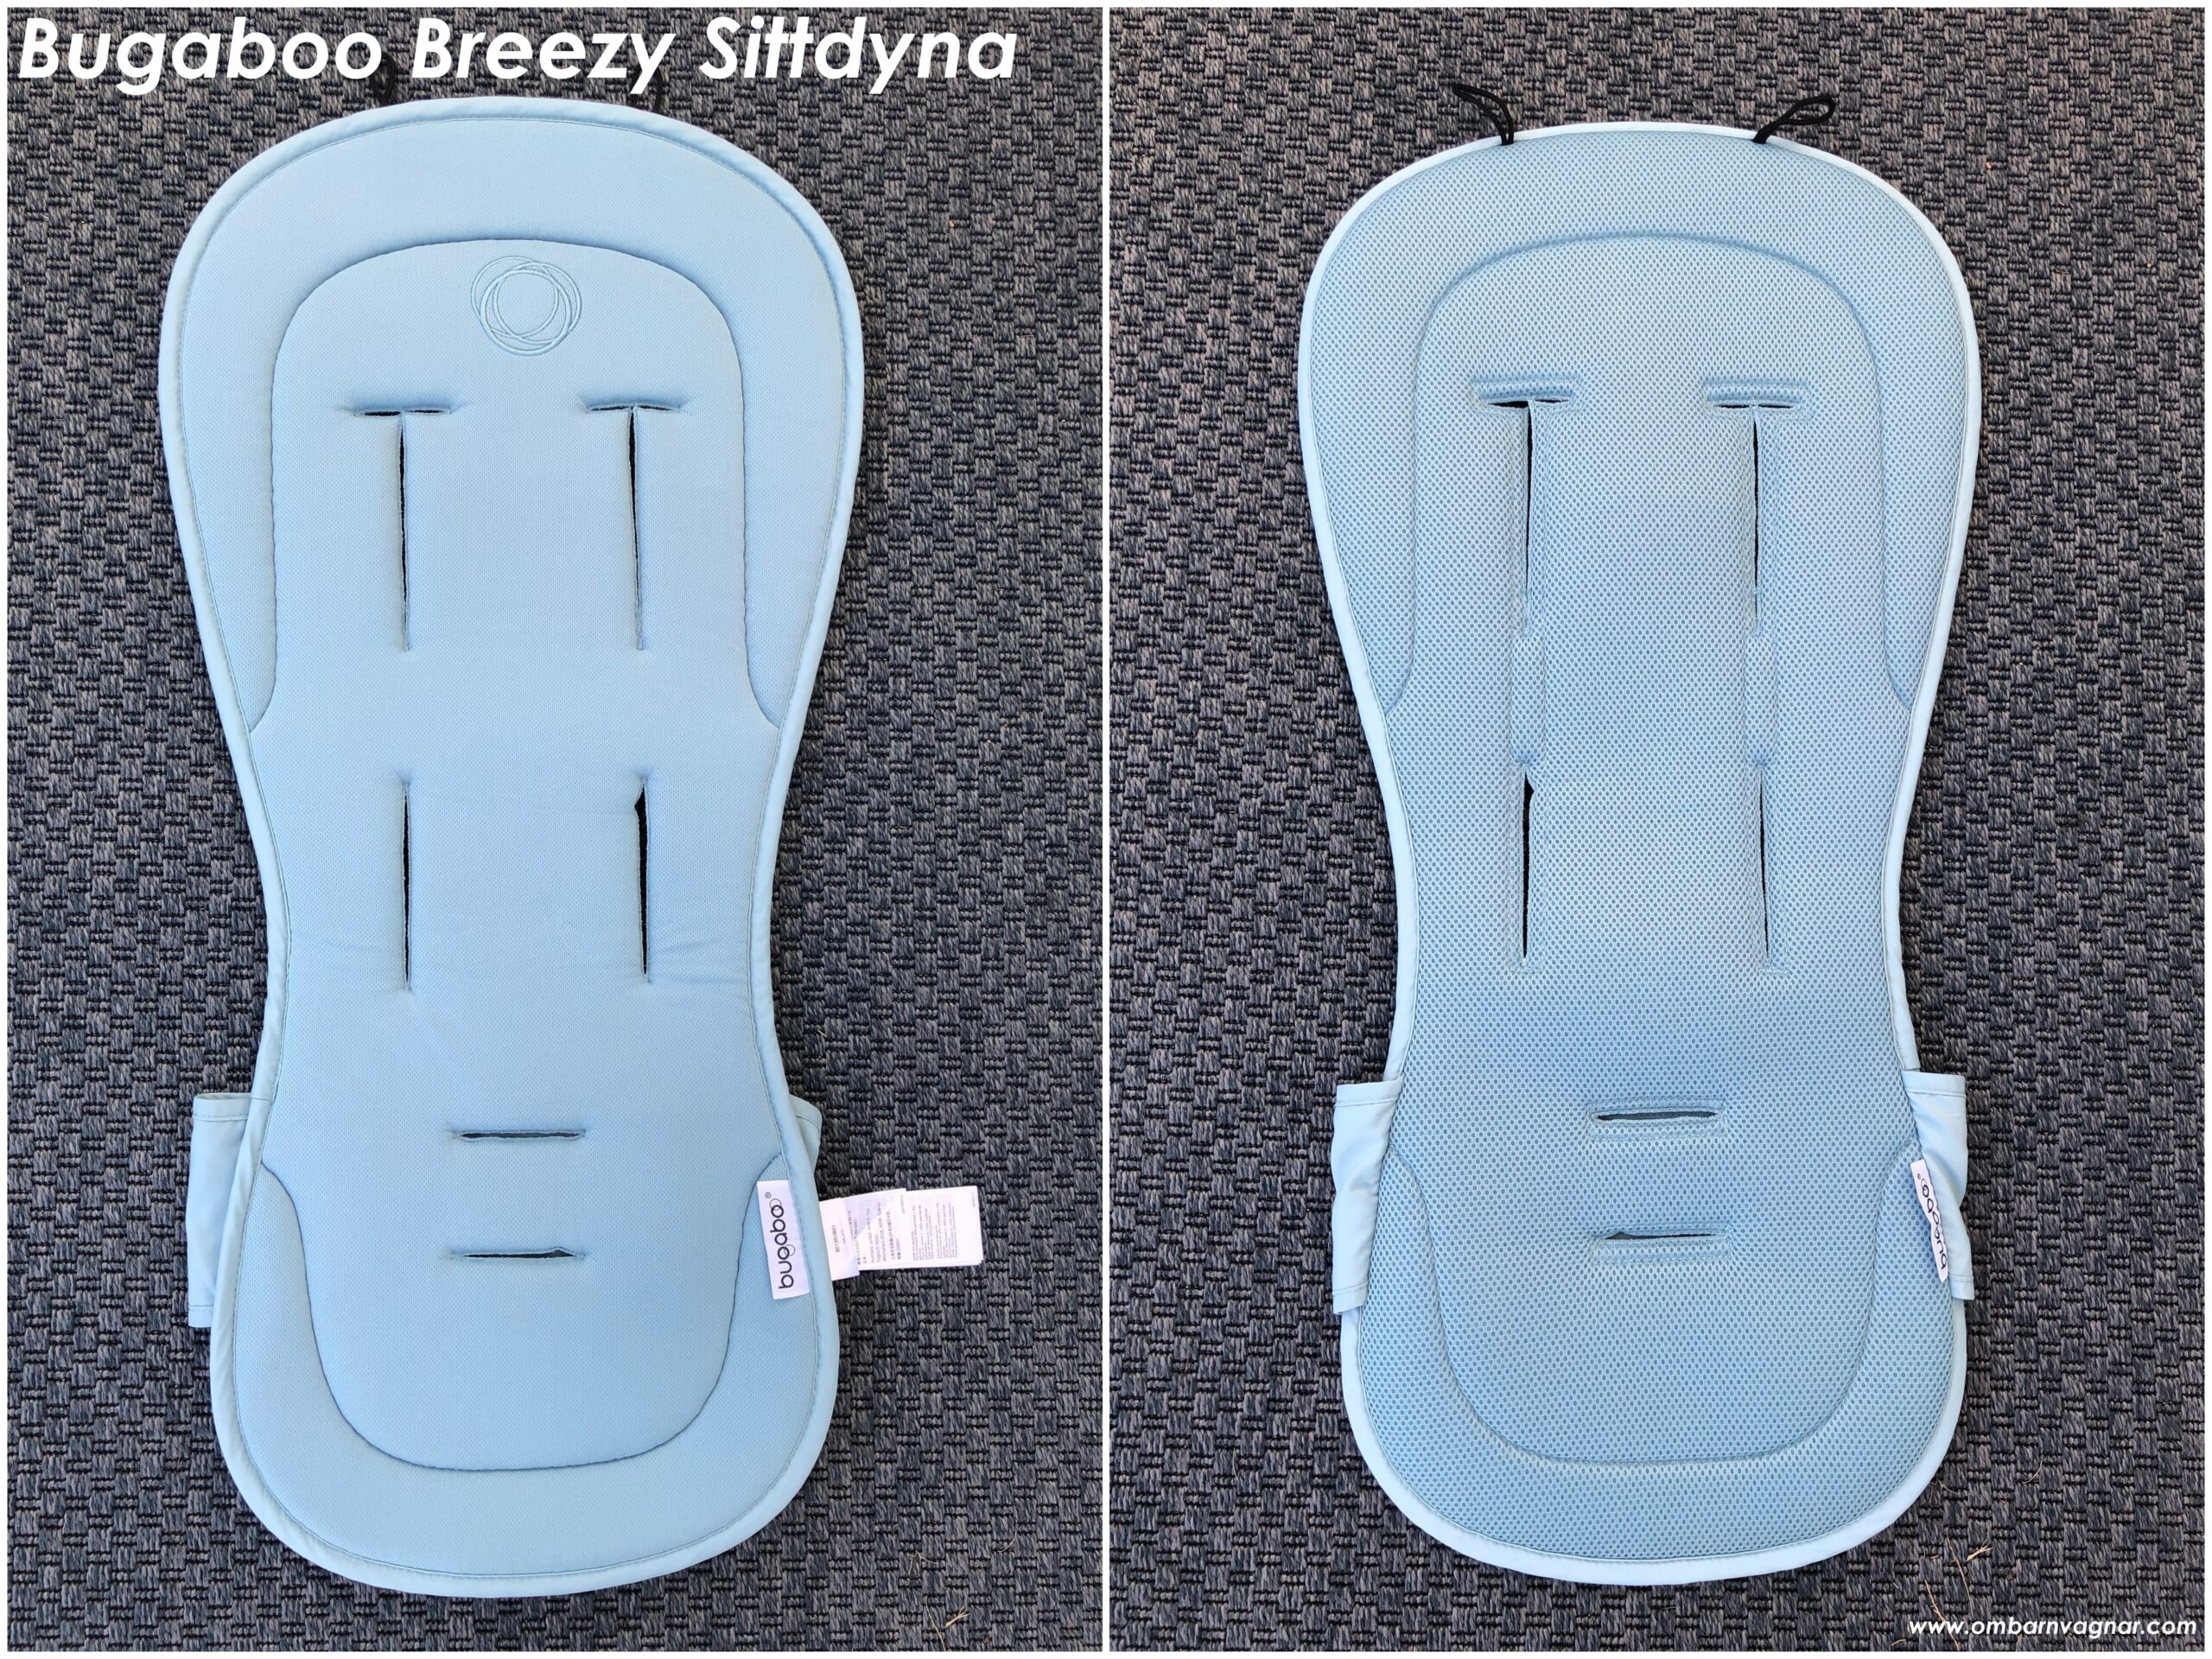 Recension av Bugaboo Breezy Svalkande sittdyna